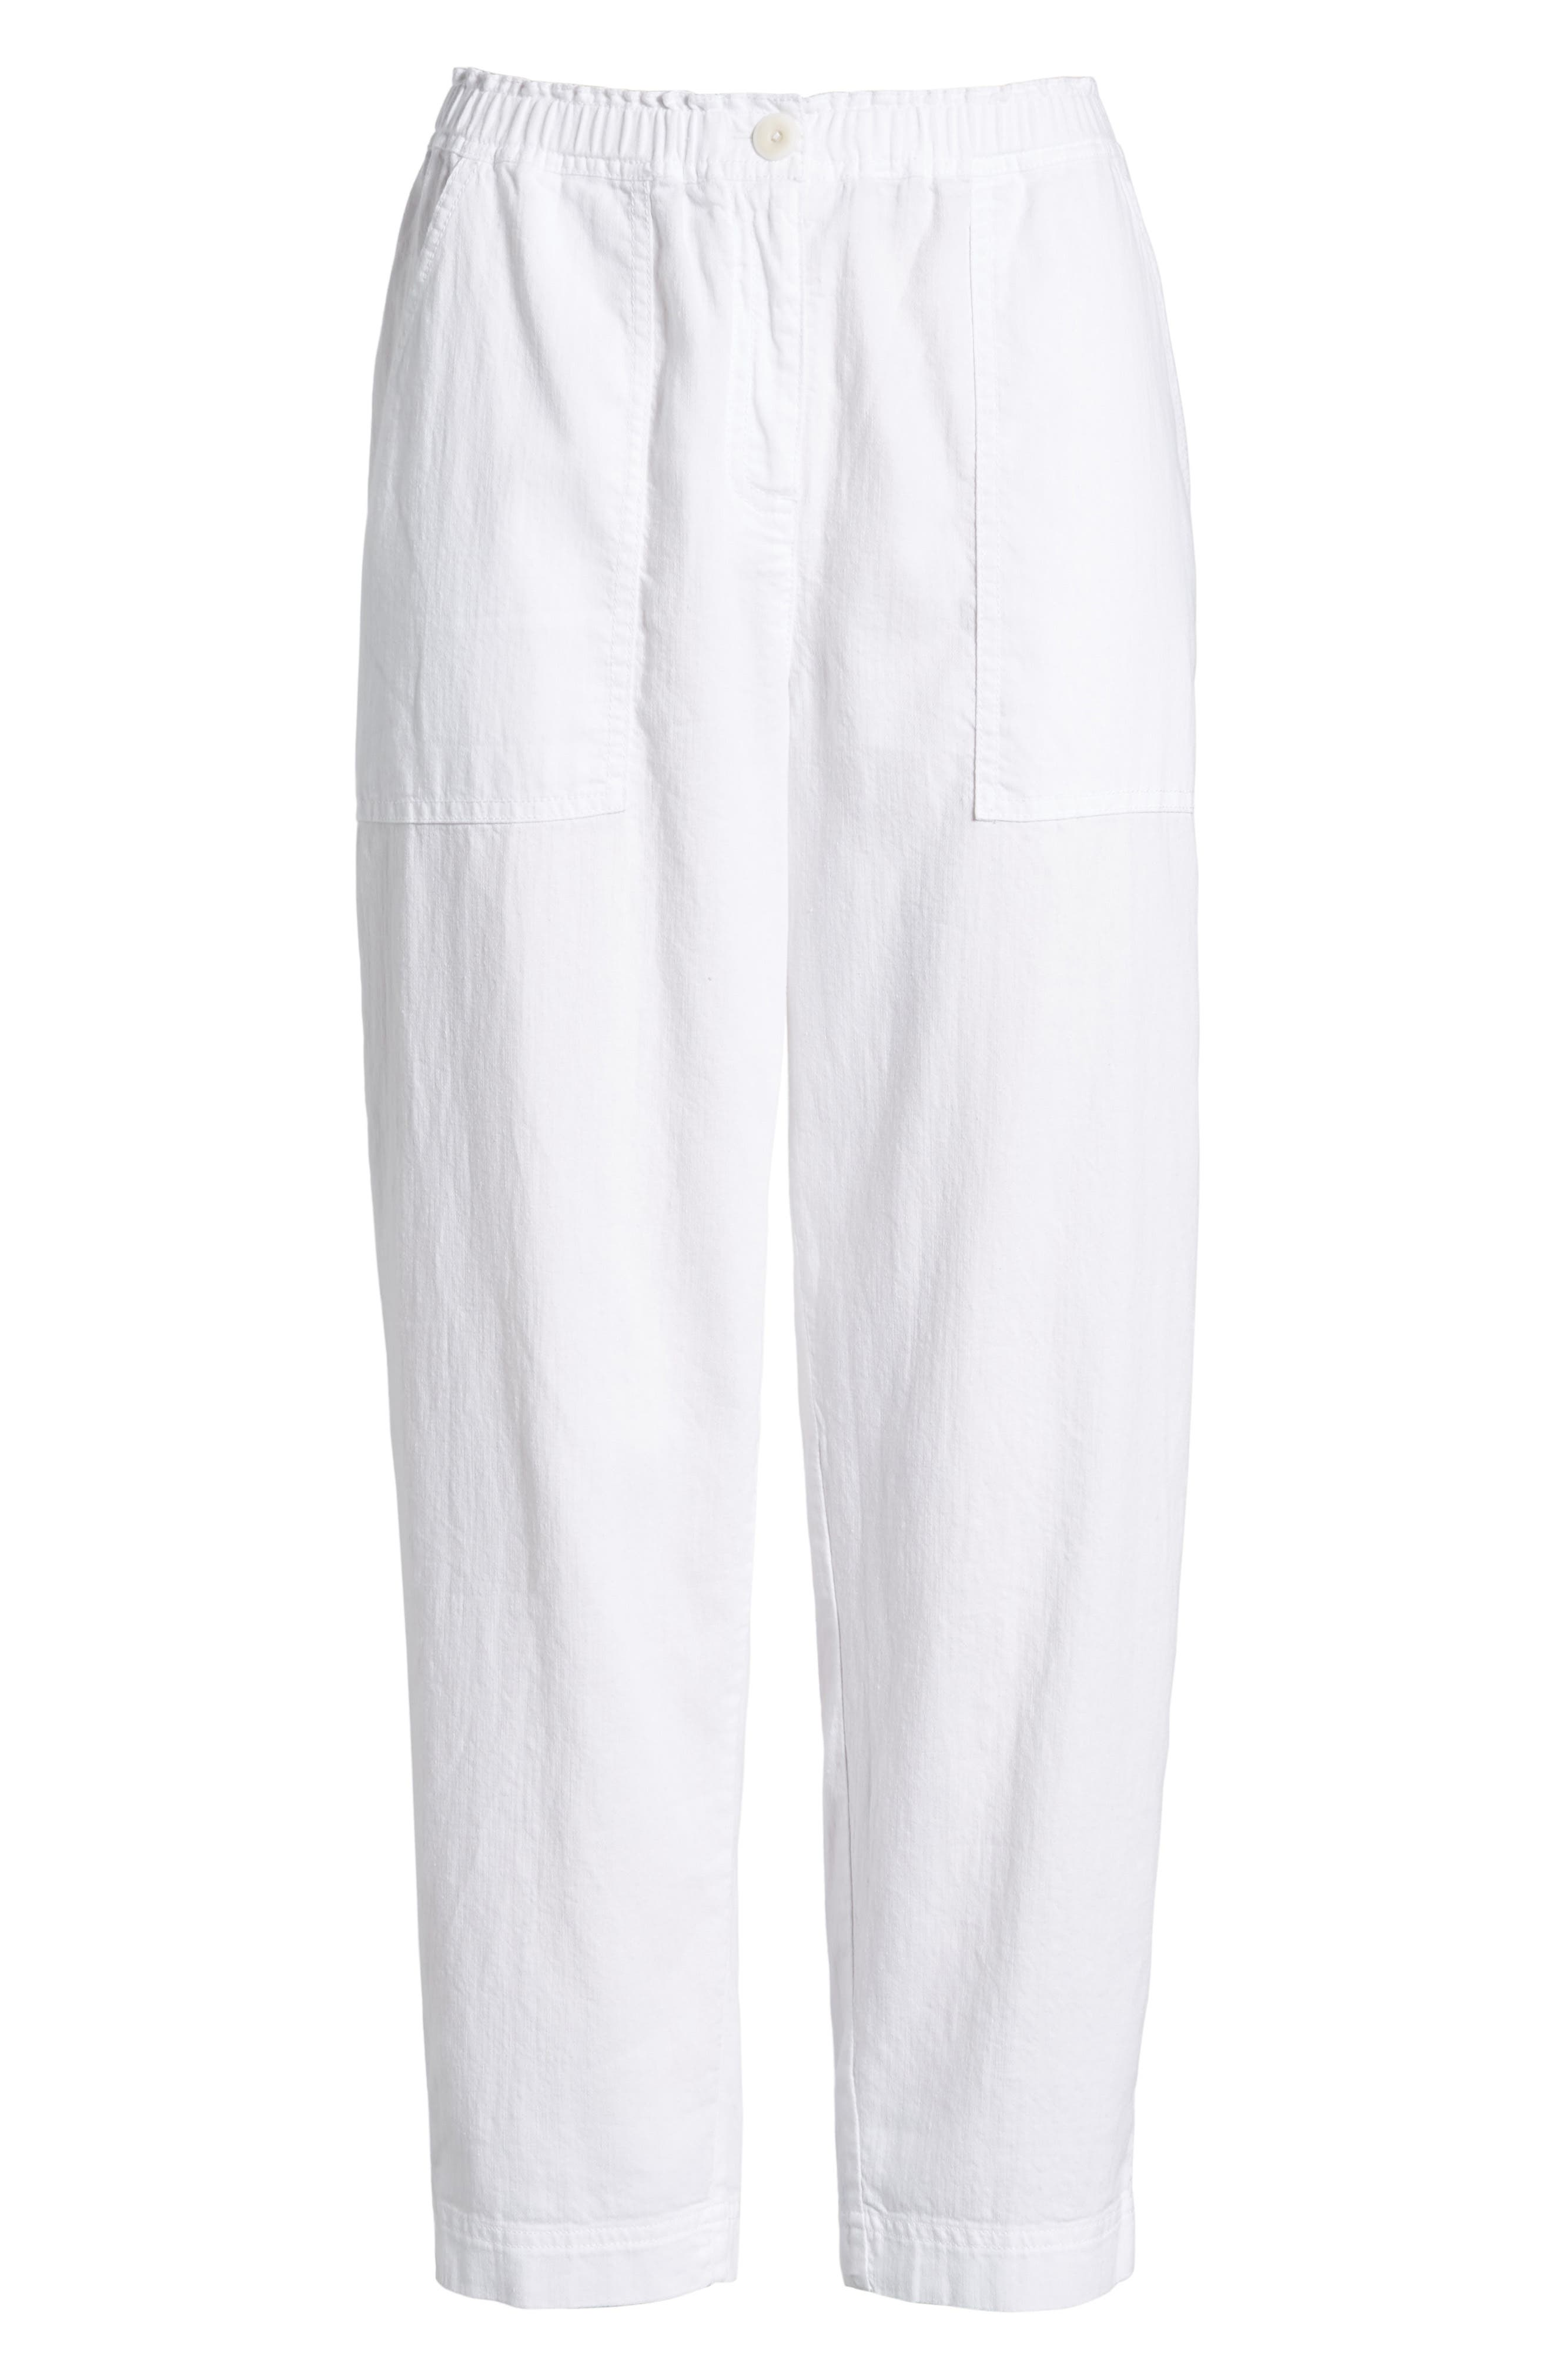 Tapered Organic Cotton Crop Pants,                             Alternate thumbnail 7, color,                             WHITE